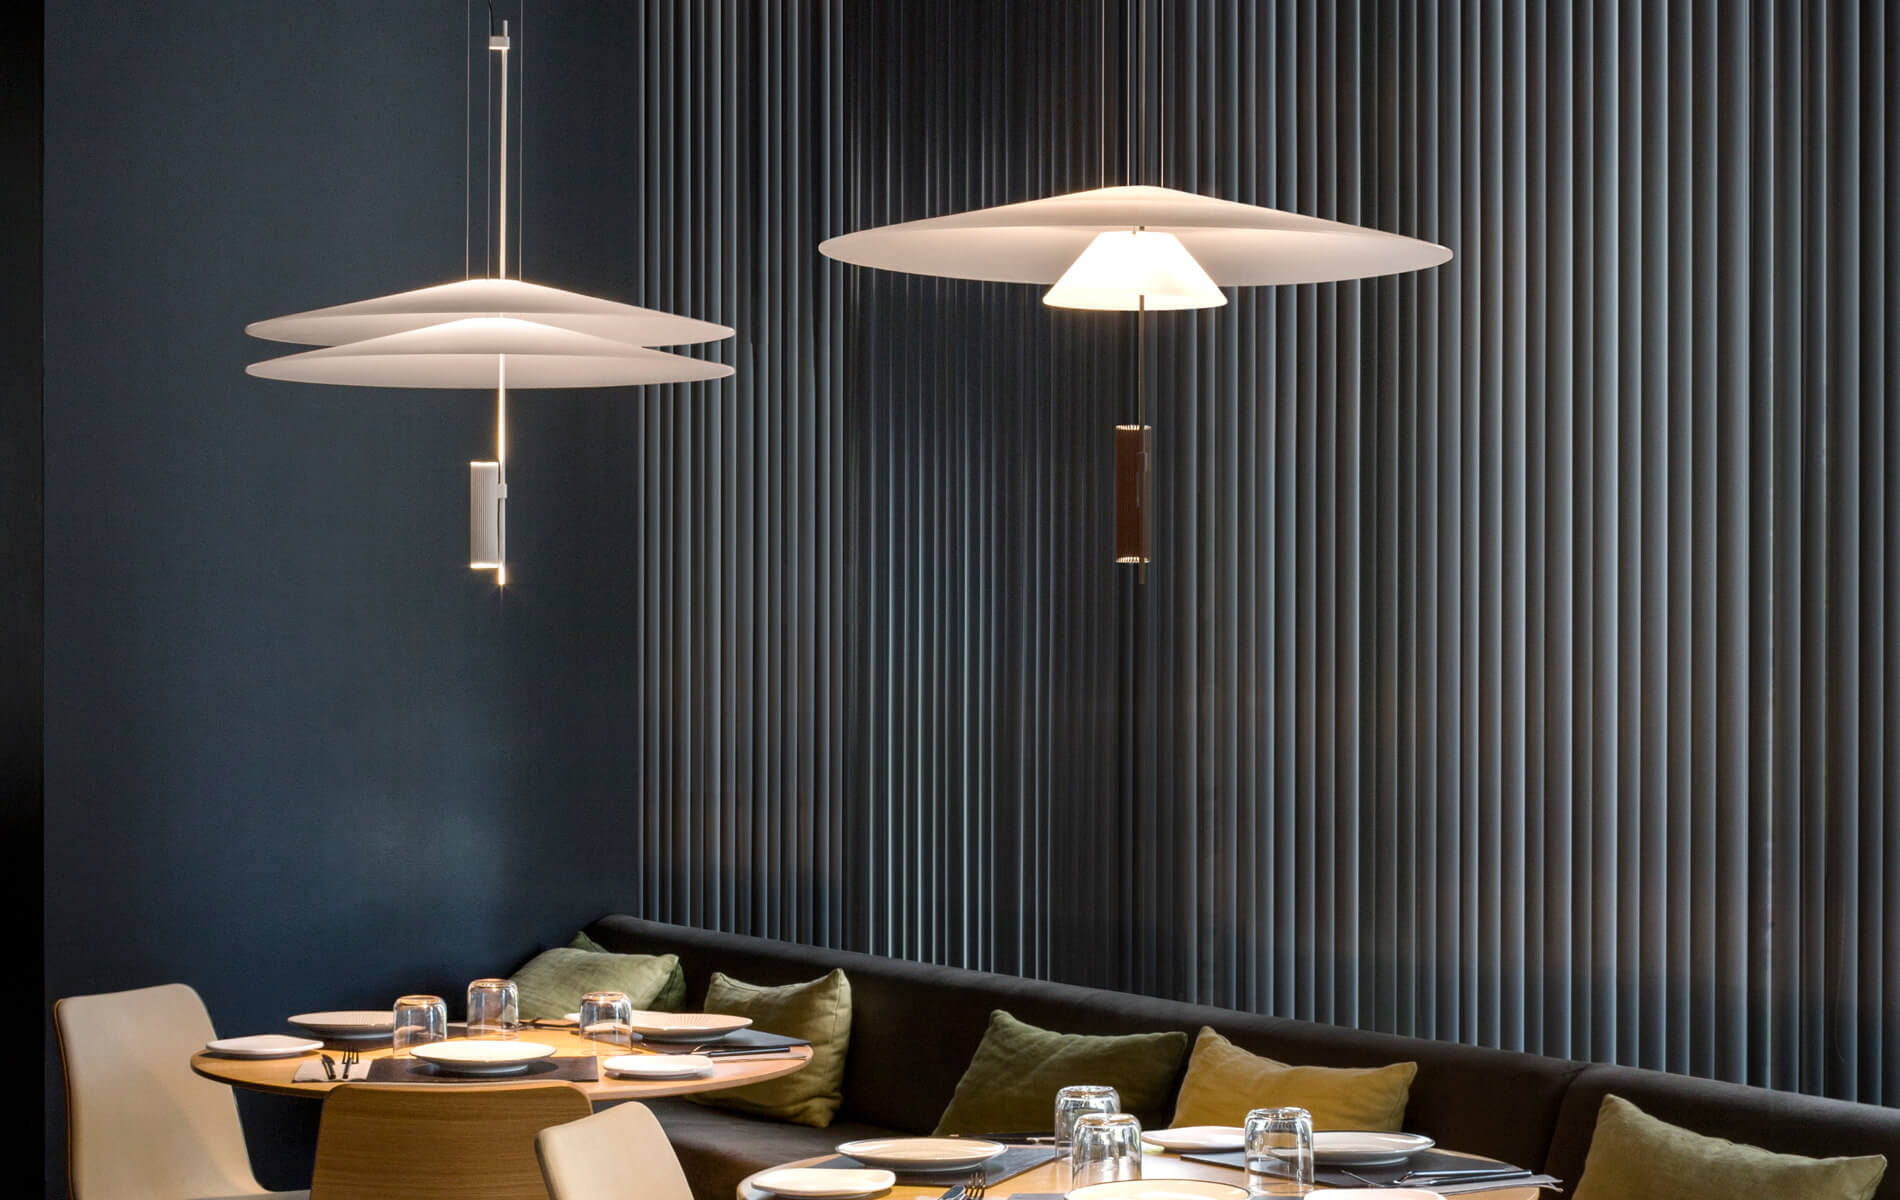 More information of Vibia FLAMINGO 1510 hanging lamp